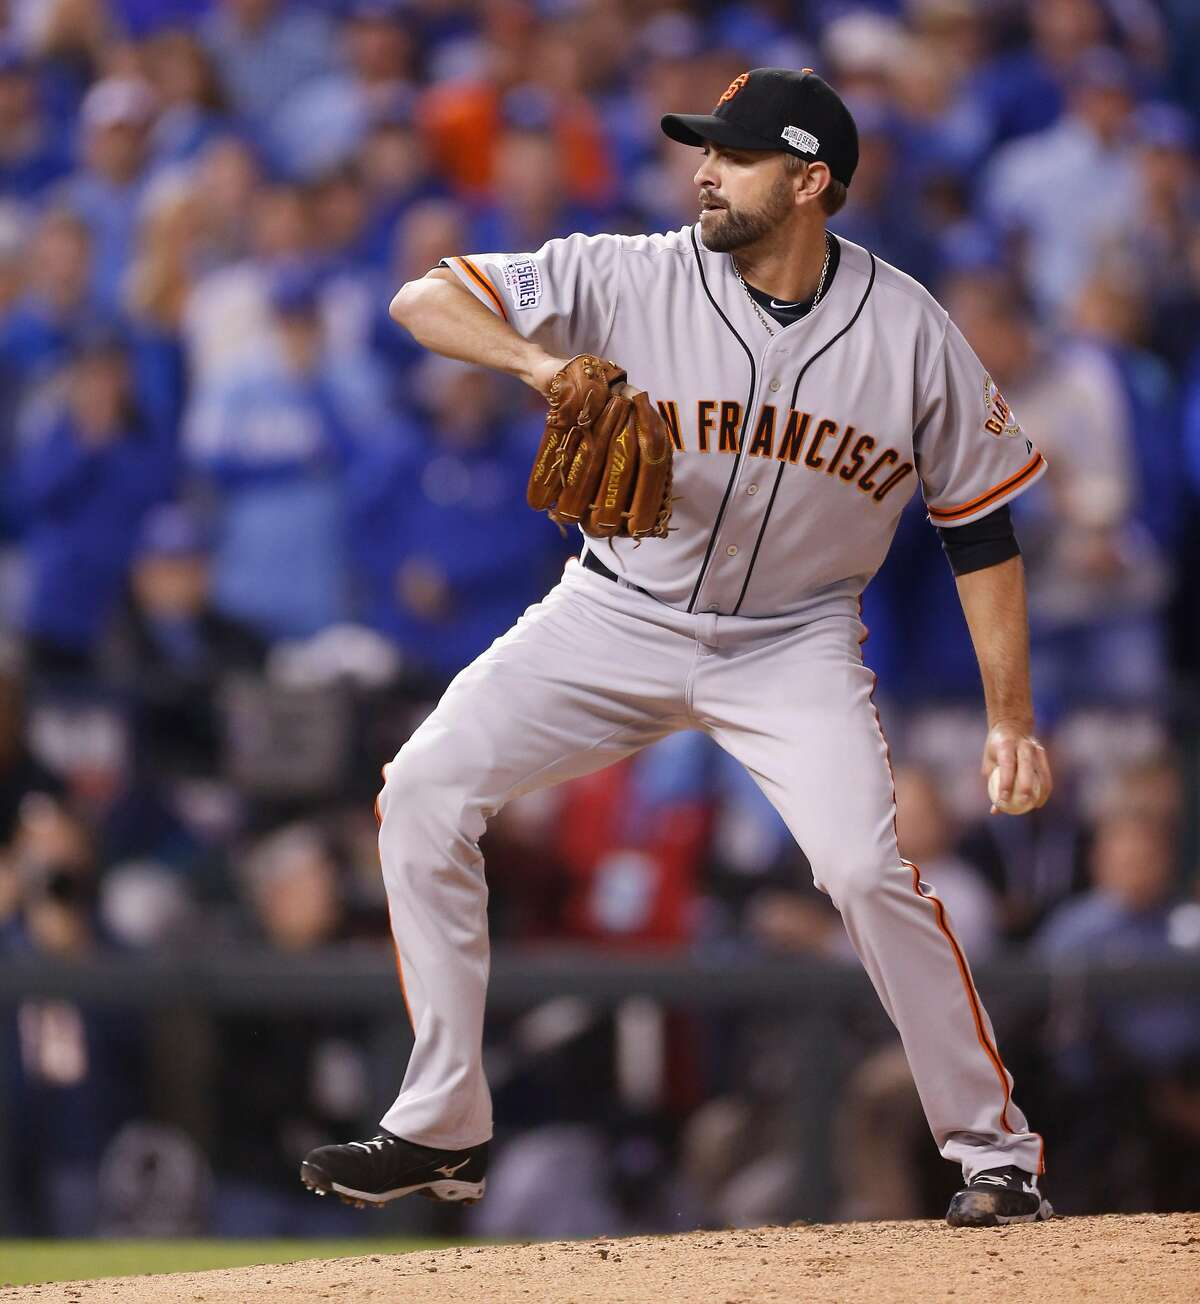 Giants Jeremy Affeldt pitches in the second inning during Game 7 of the World Series at Kauffman Stadium on Wednesday, Oct. 29, 2014 in Kansas City, Mo.